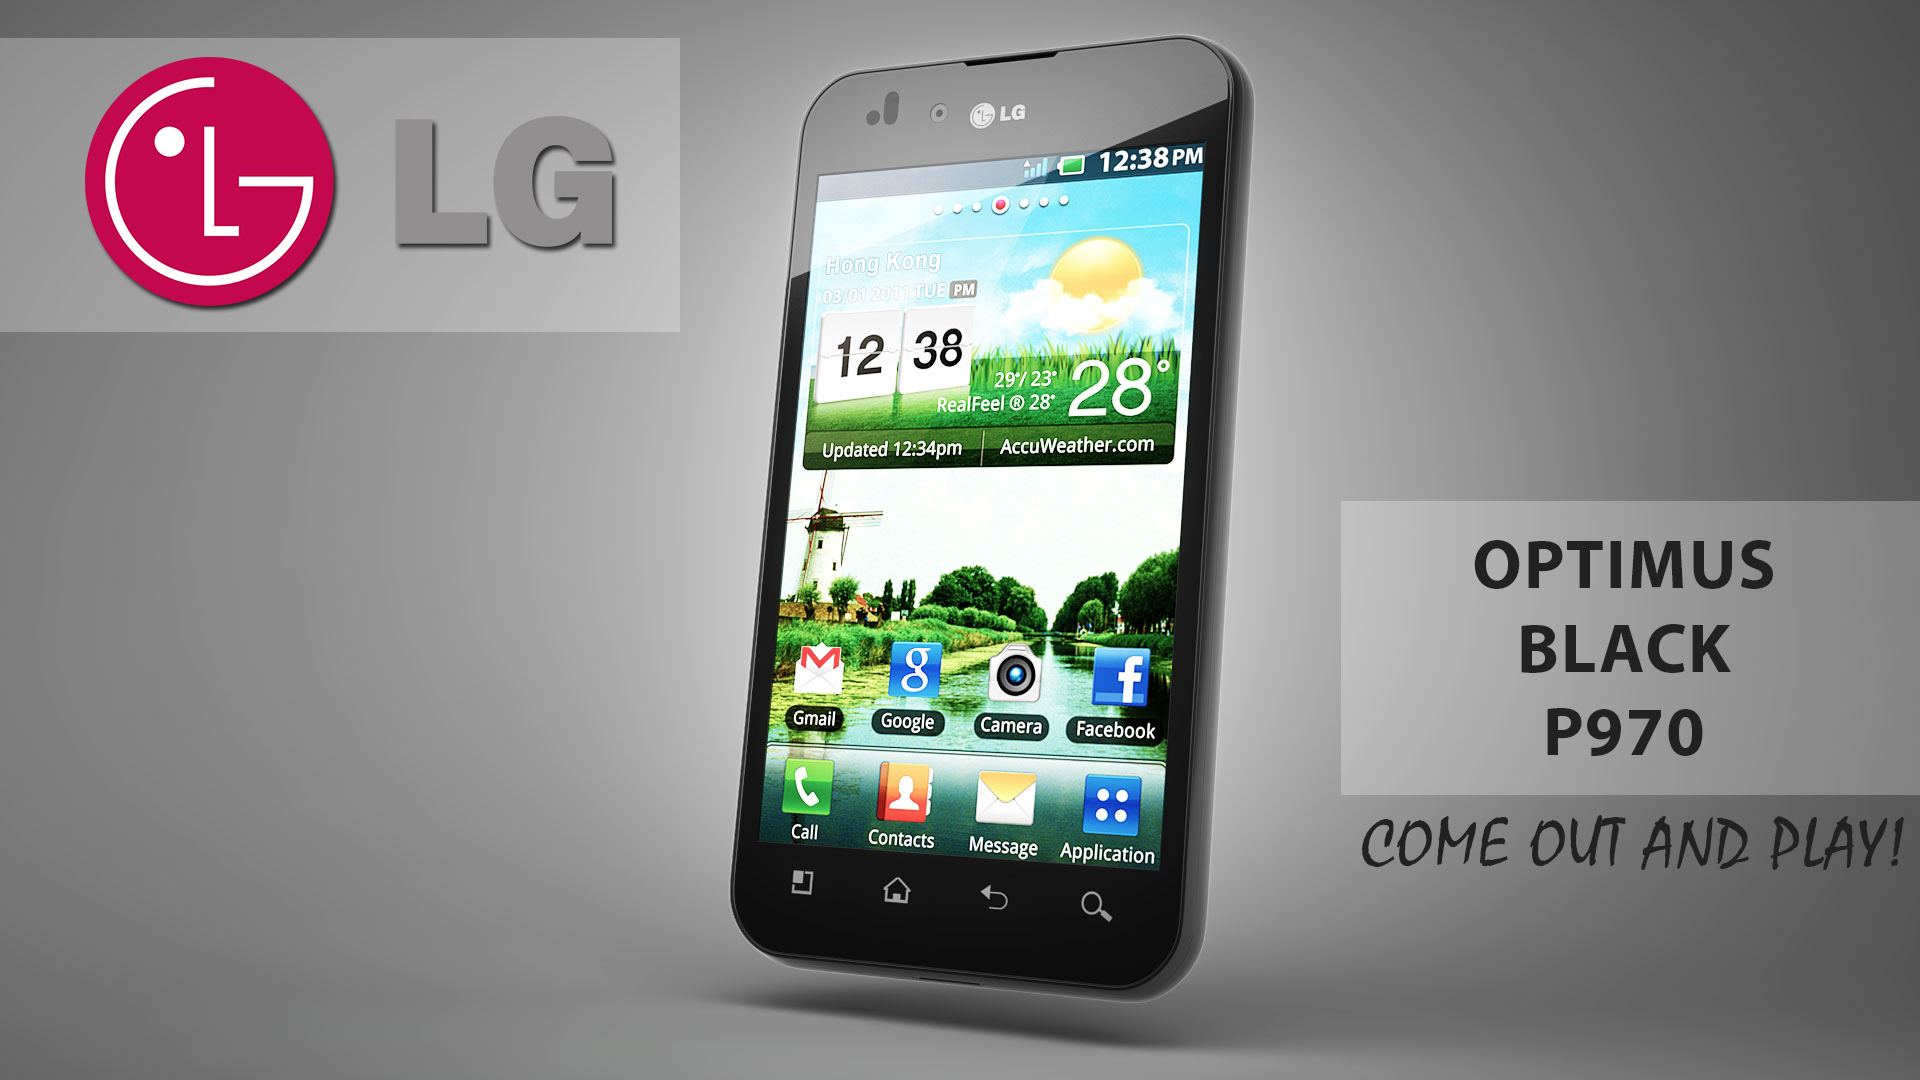 lg-p970-optimus-black.jpg